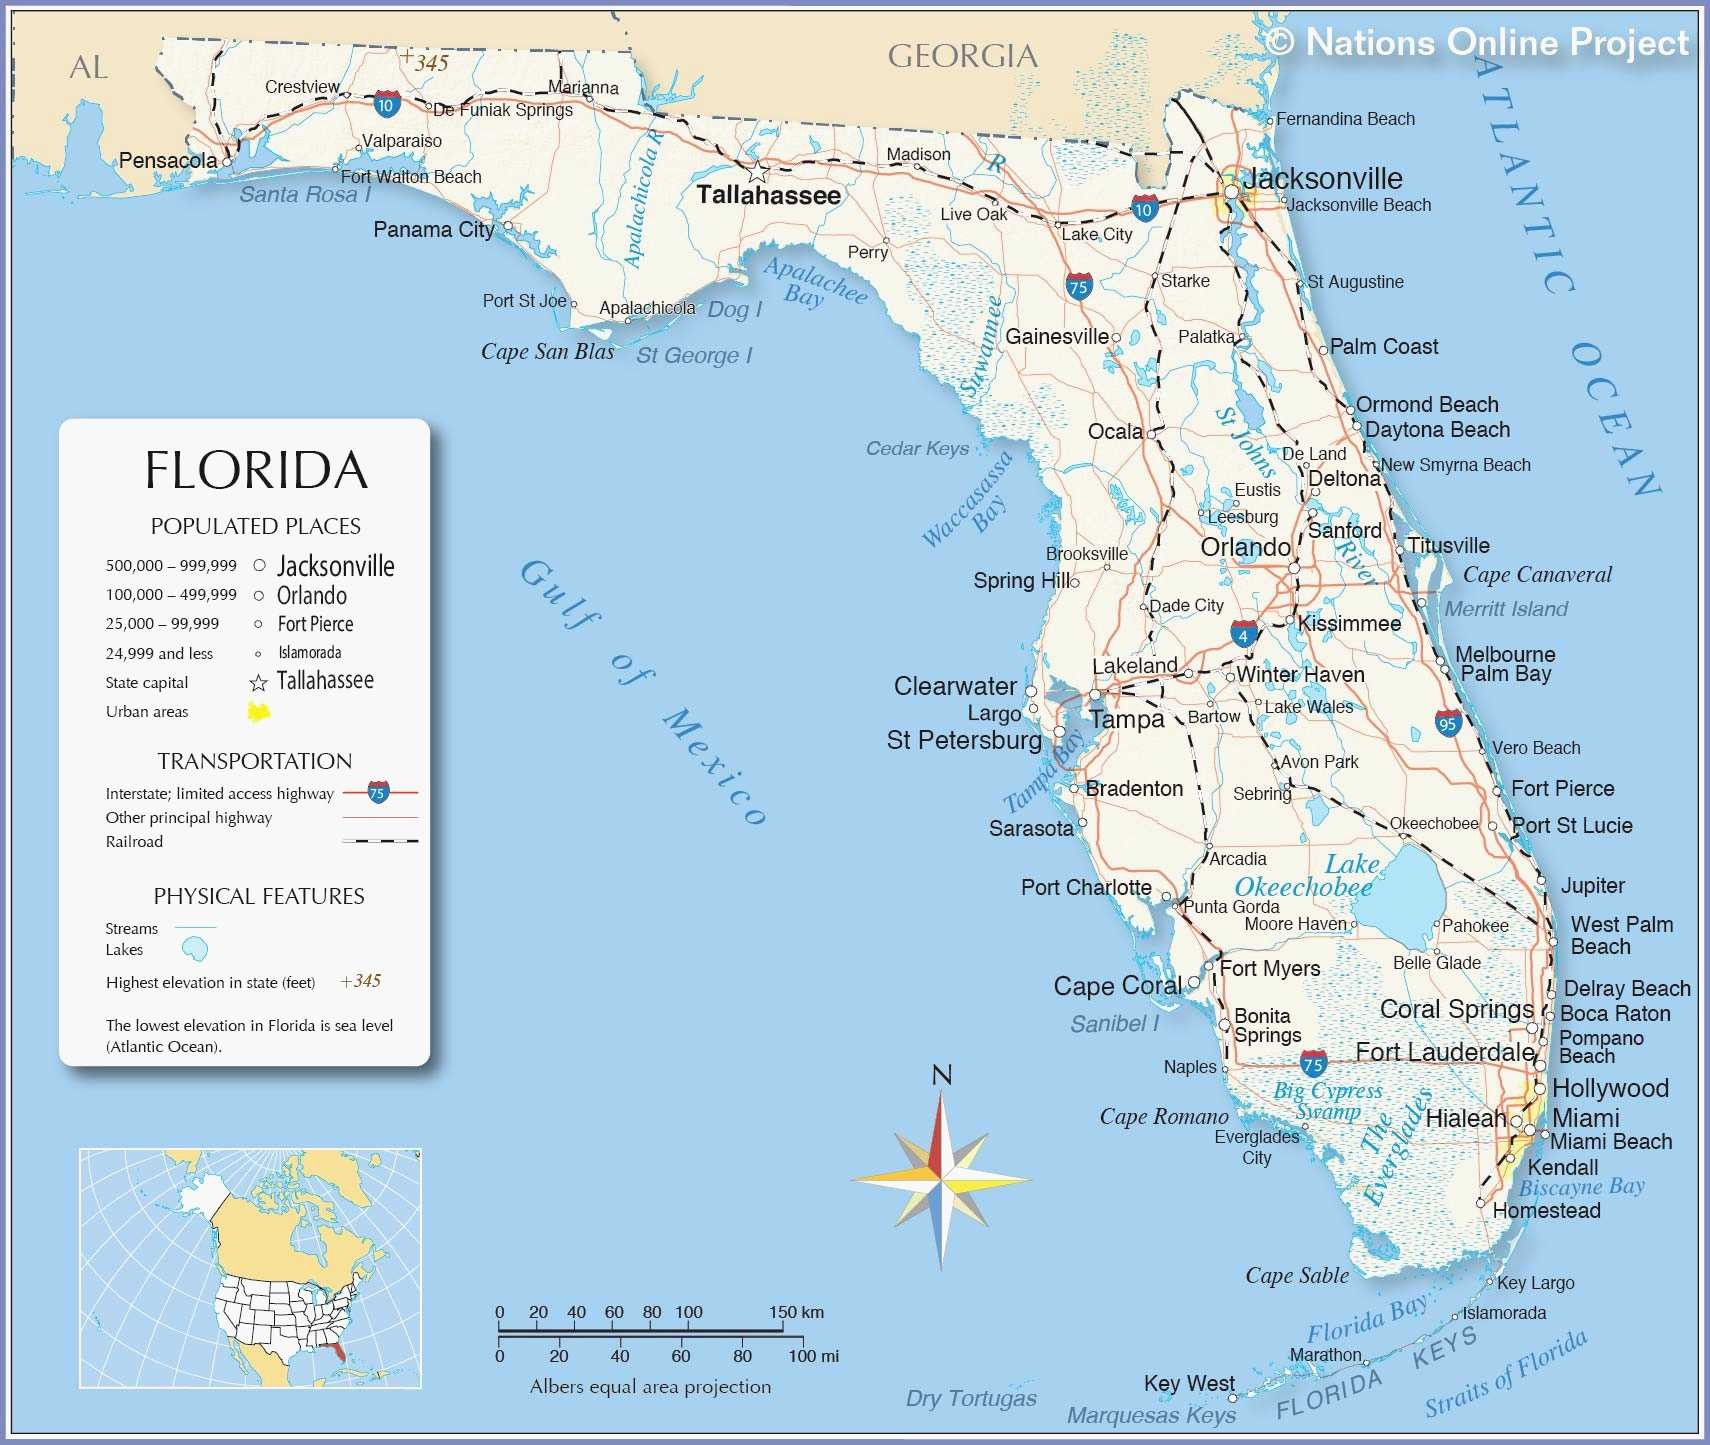 United States Map Of Vacation Spots Save Great Clearwater Beach - Map Of Florida Vacation Spots